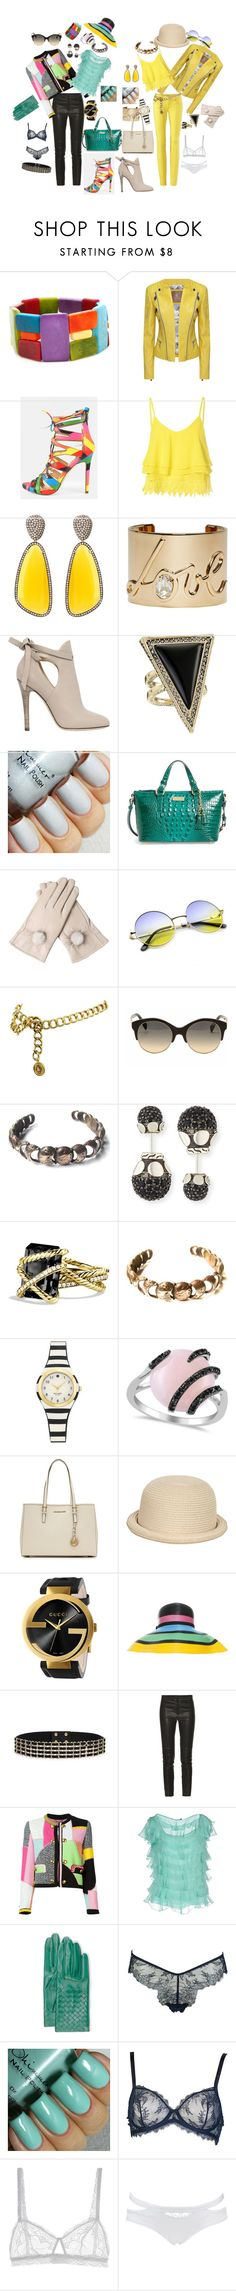 """29"" by kuropirate on Polyvore featuring Encanto, Glamorous, Christina Debs, Lanvin, Jimmy Choo, House of Harlow 1960, Brahmin, Chanel, Emilio Pucci and Mary Gallagher"